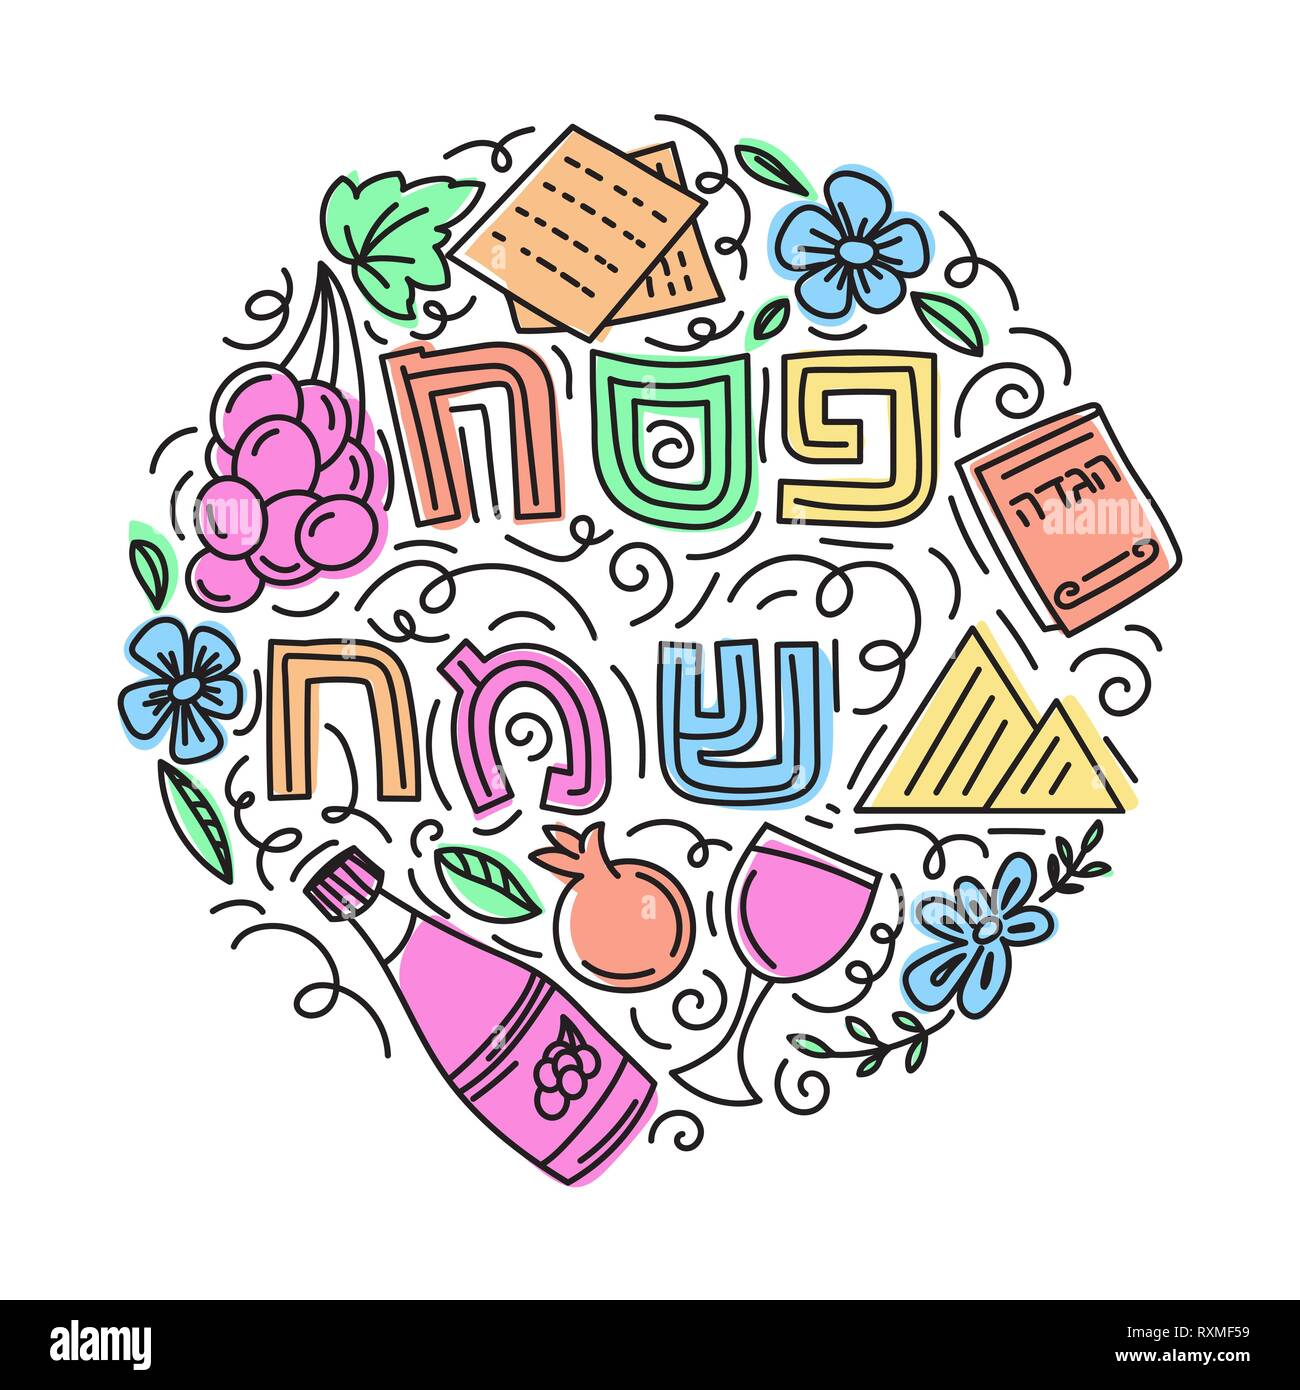 Passover greeting card (Jewish holiday Pesach). Hebrew text: happy Passover. Line art vector illustration. Doodle style. Isolated on white background. - Stock Vector